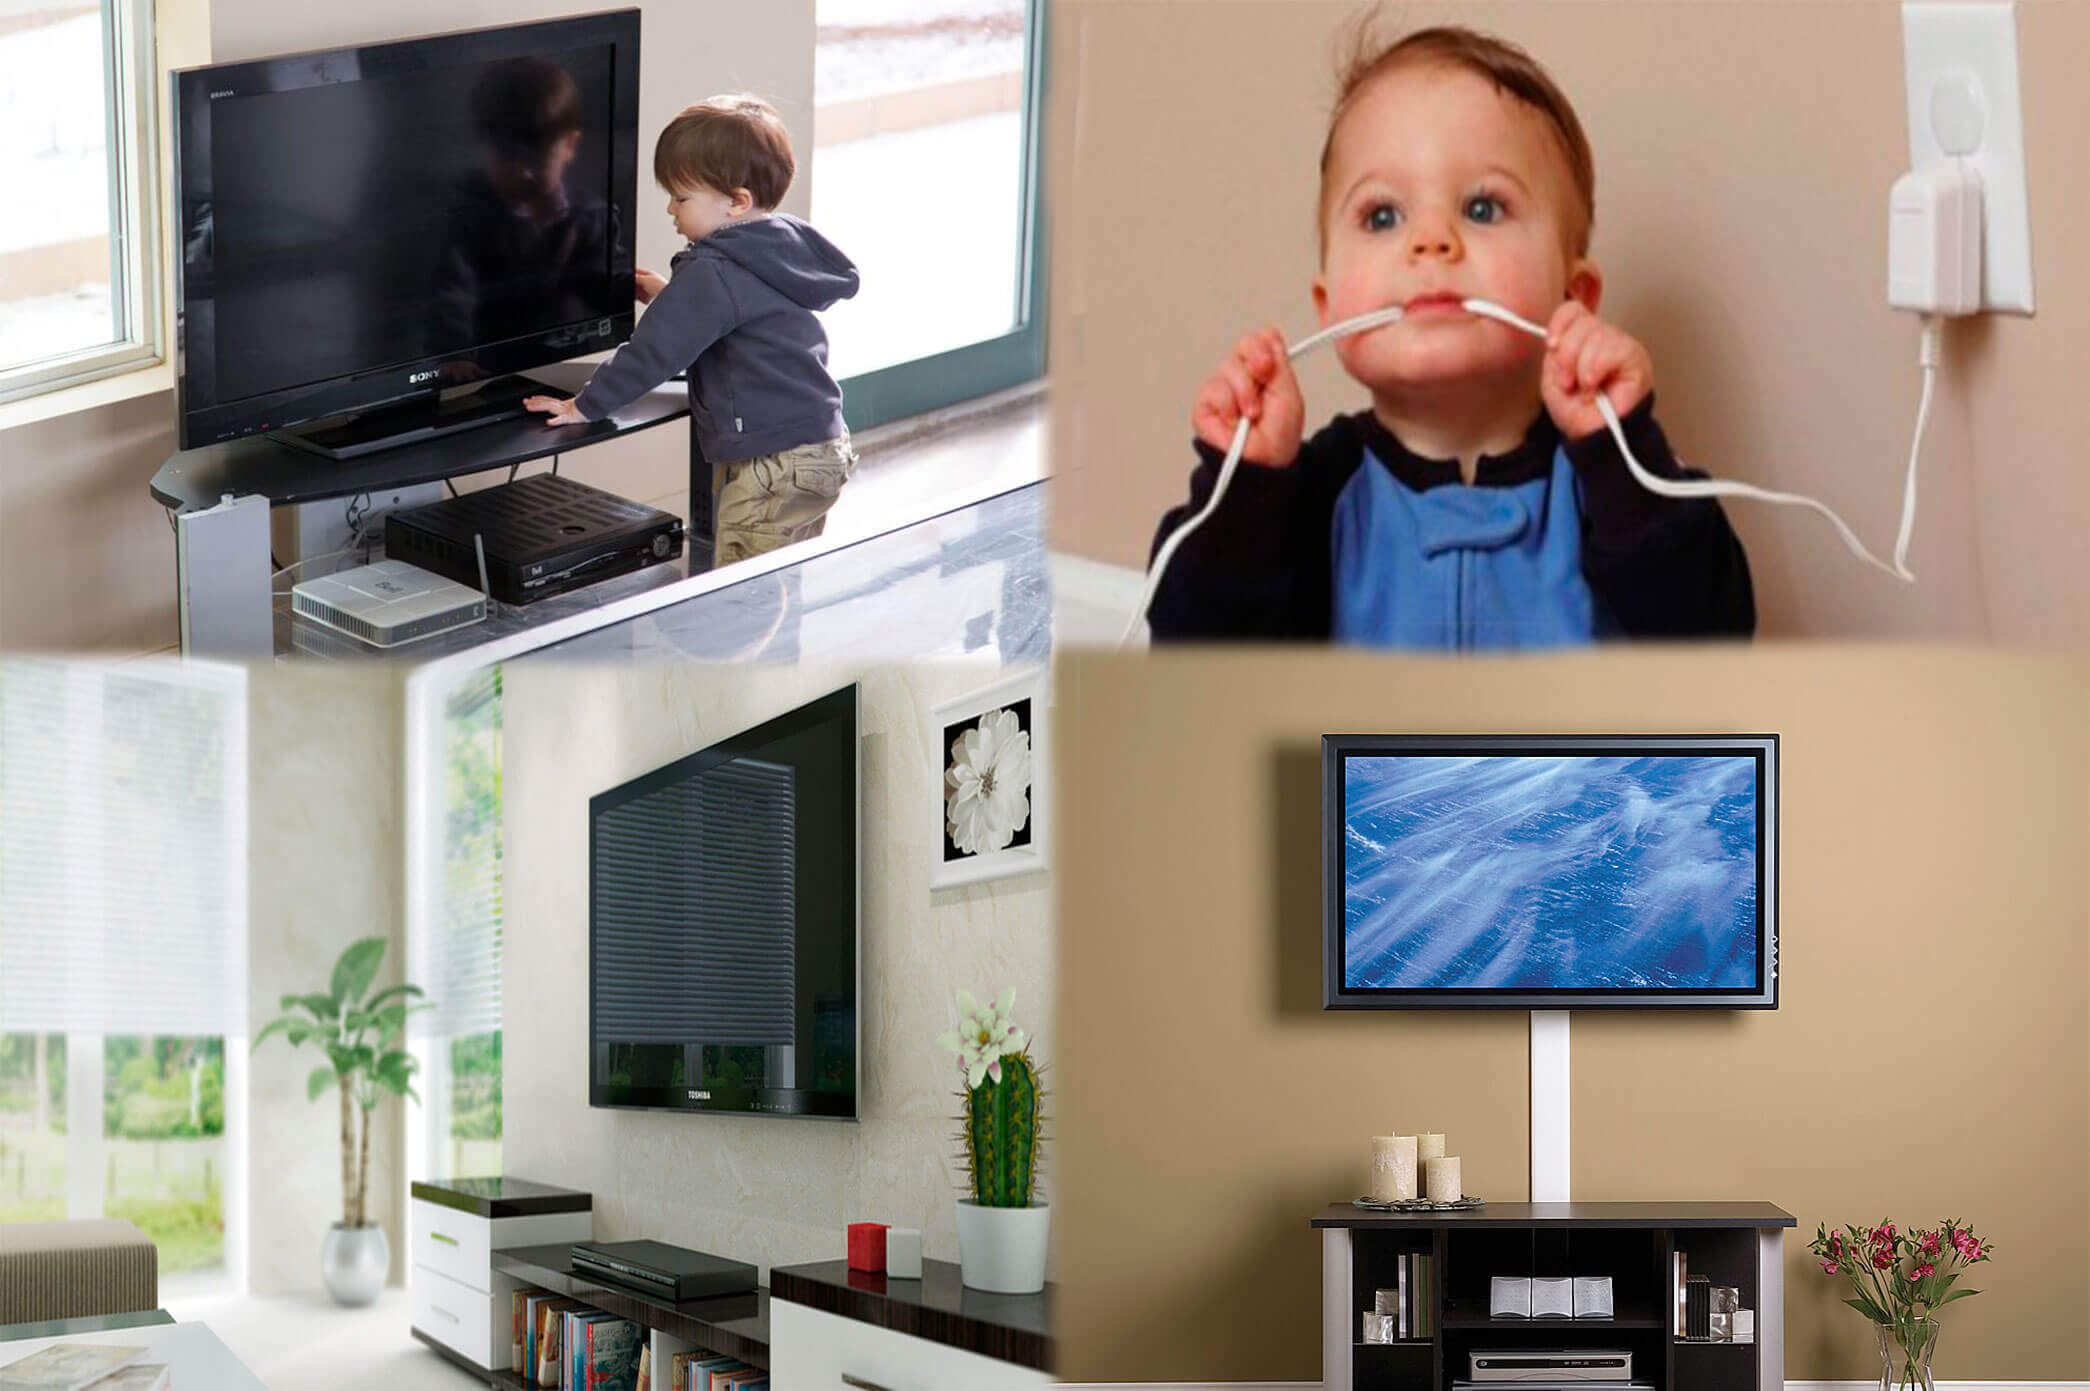 Como Colgar Tv En Pared Como Colgar Tv En Pared Soporte Tv De Cable De Pared Y